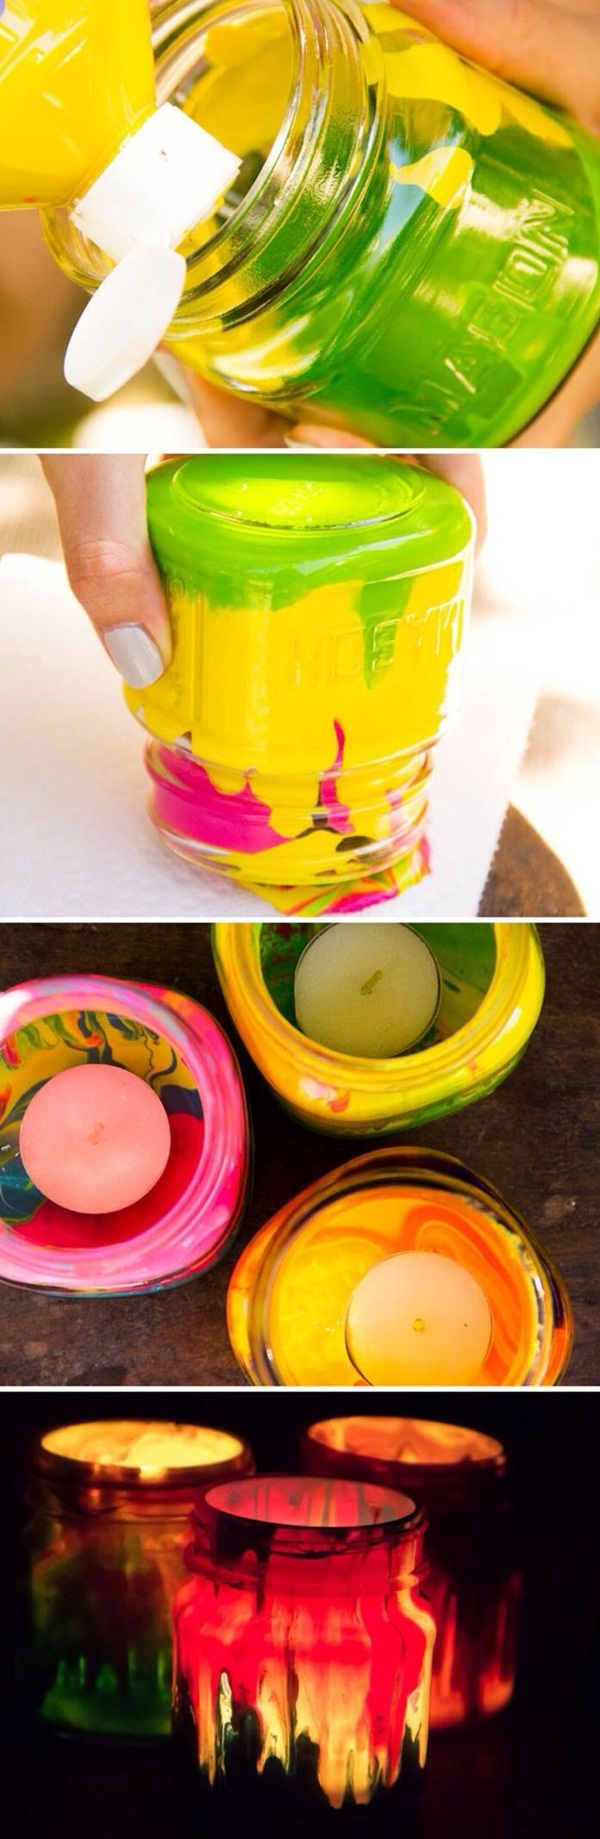 Fun art projects for Kids10